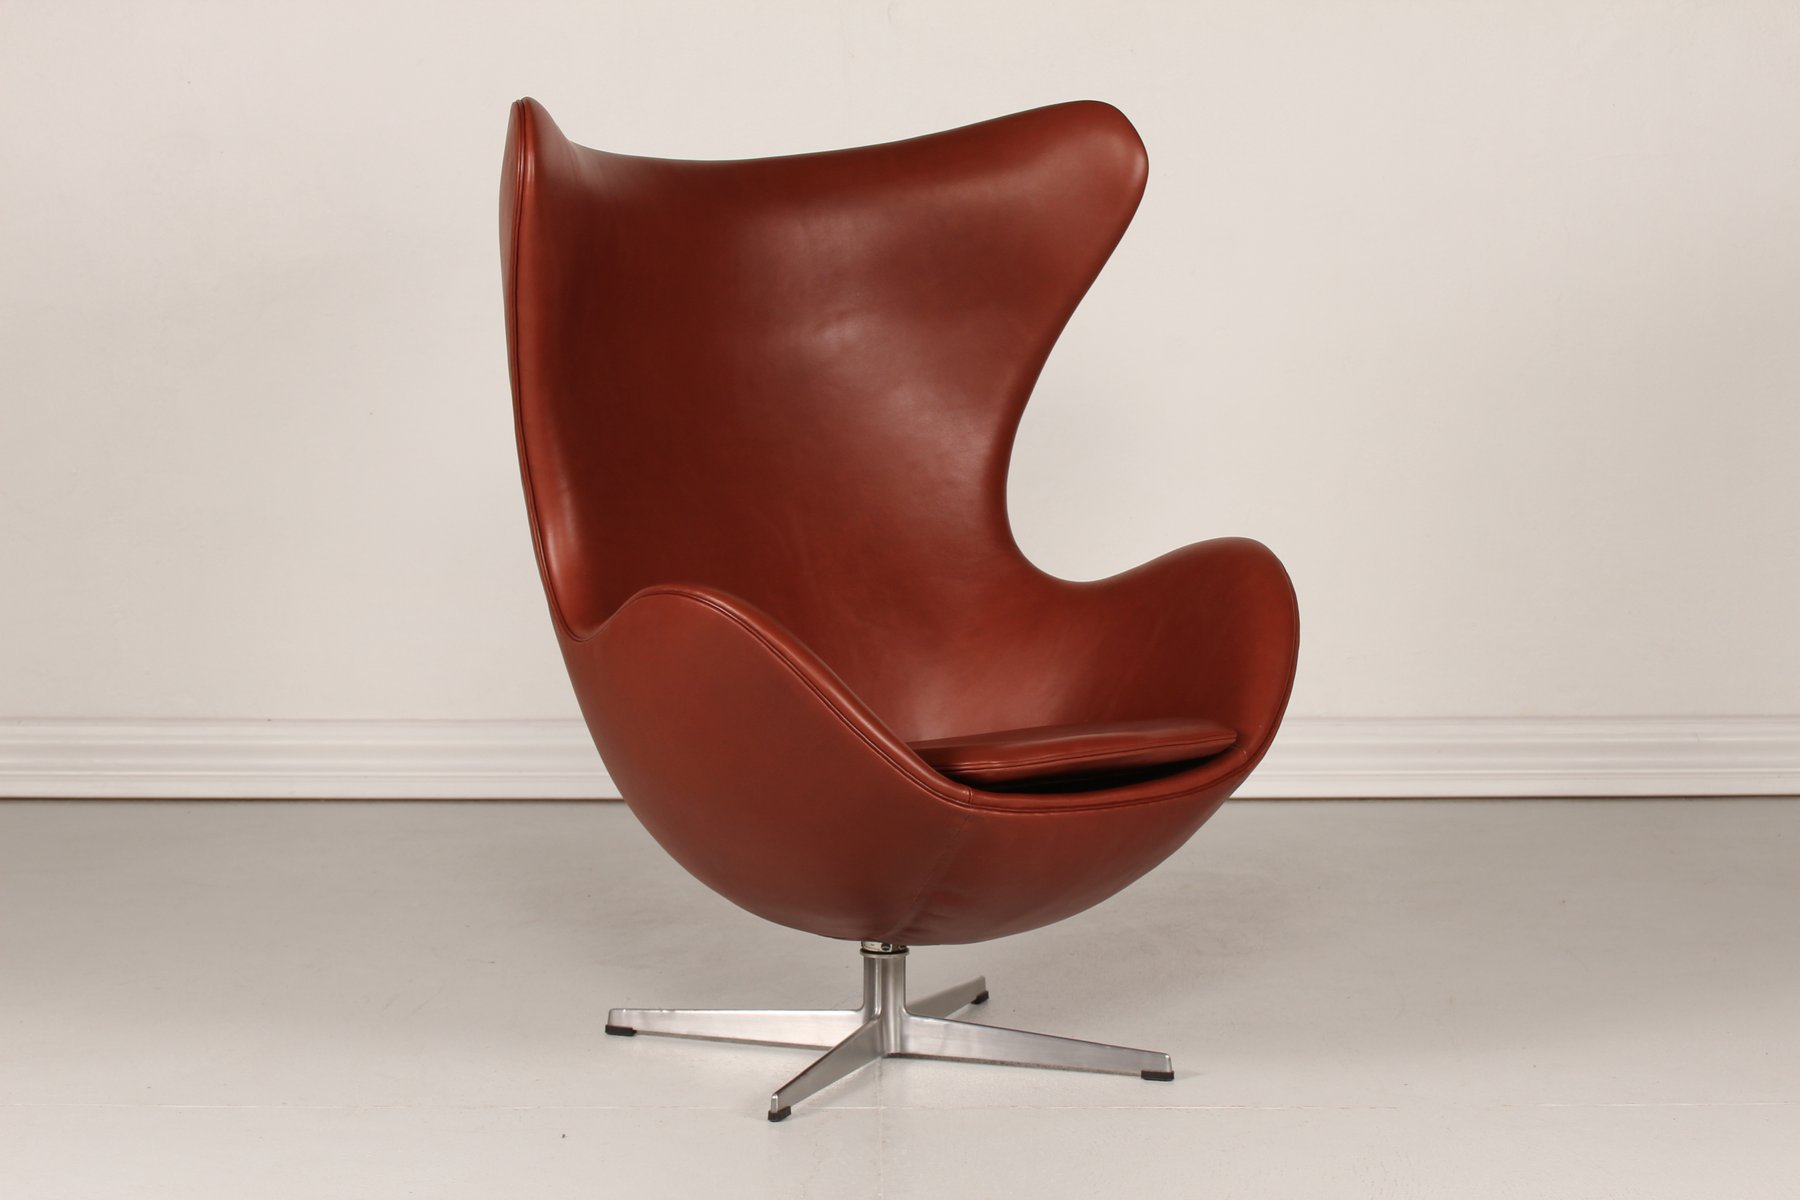 3316 cognac leather egg chair by arne jacobsen for fritz hansen 1969 for sale at pamono. Black Bedroom Furniture Sets. Home Design Ideas